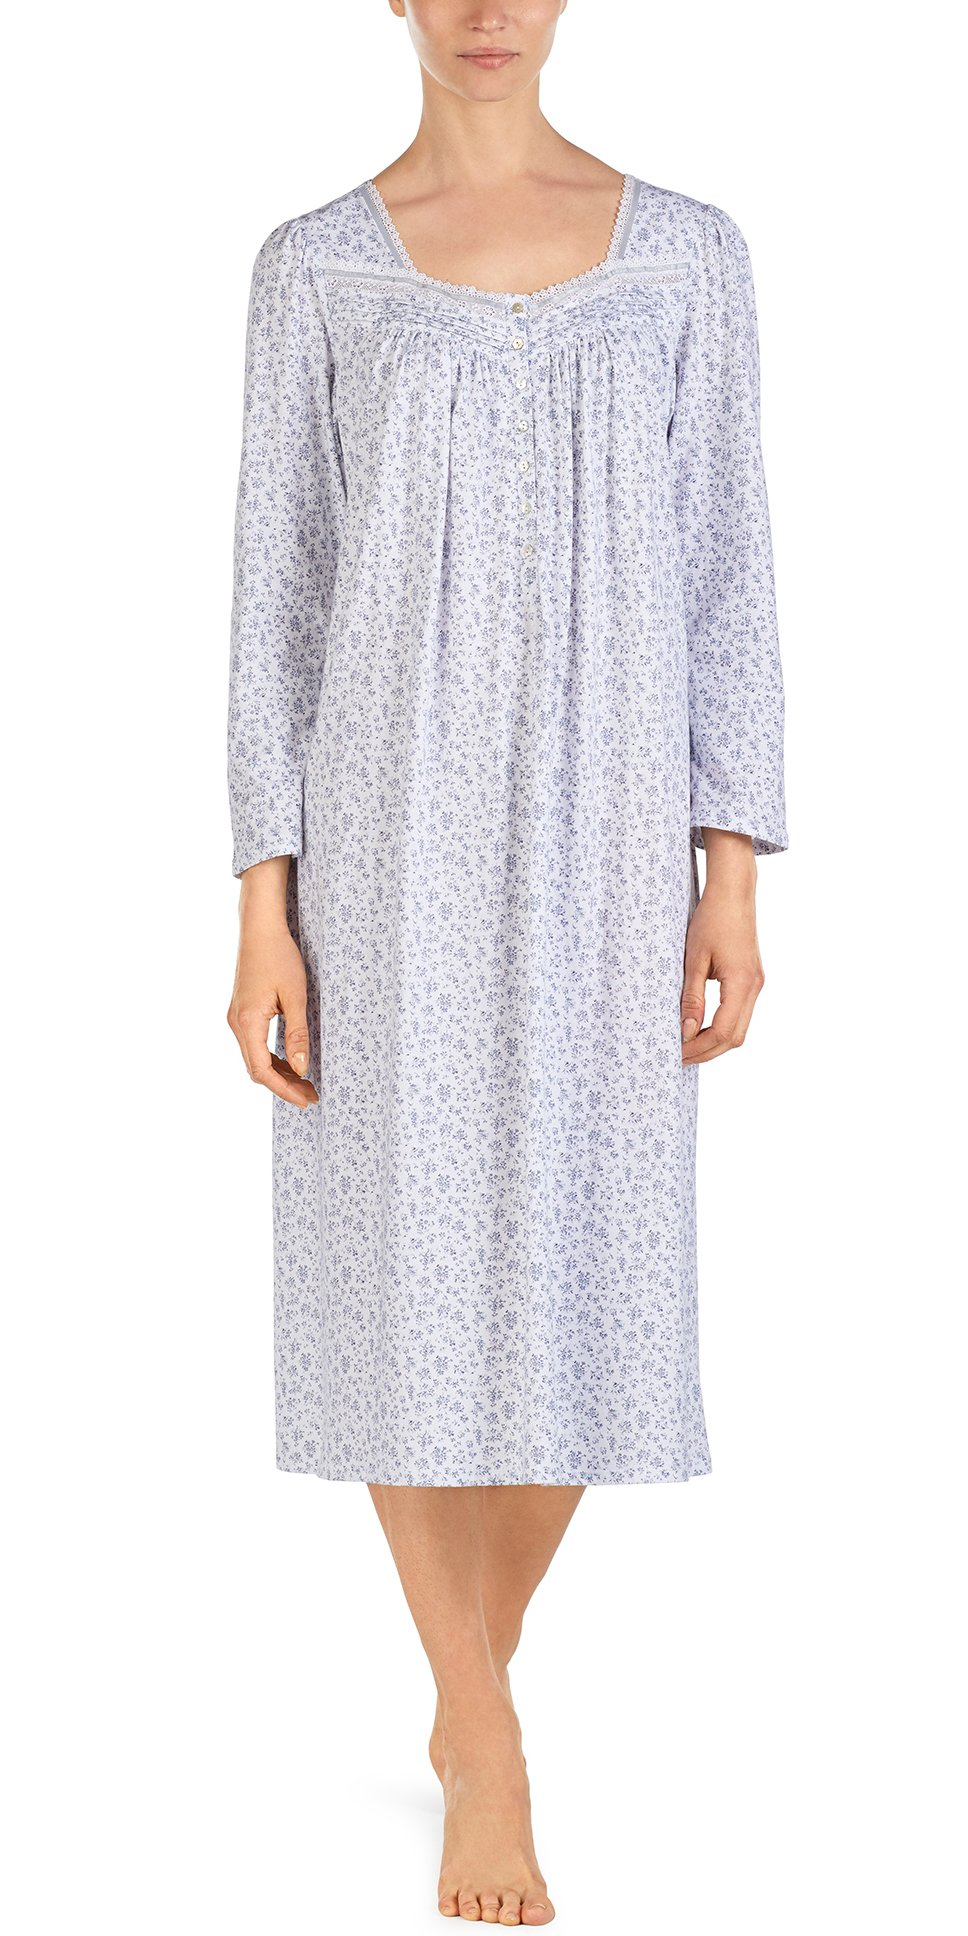 Eileen West Long Sleeve Gowns Long Cotton Knit in Silver Dale (White/Gray Print, Large (14-16))